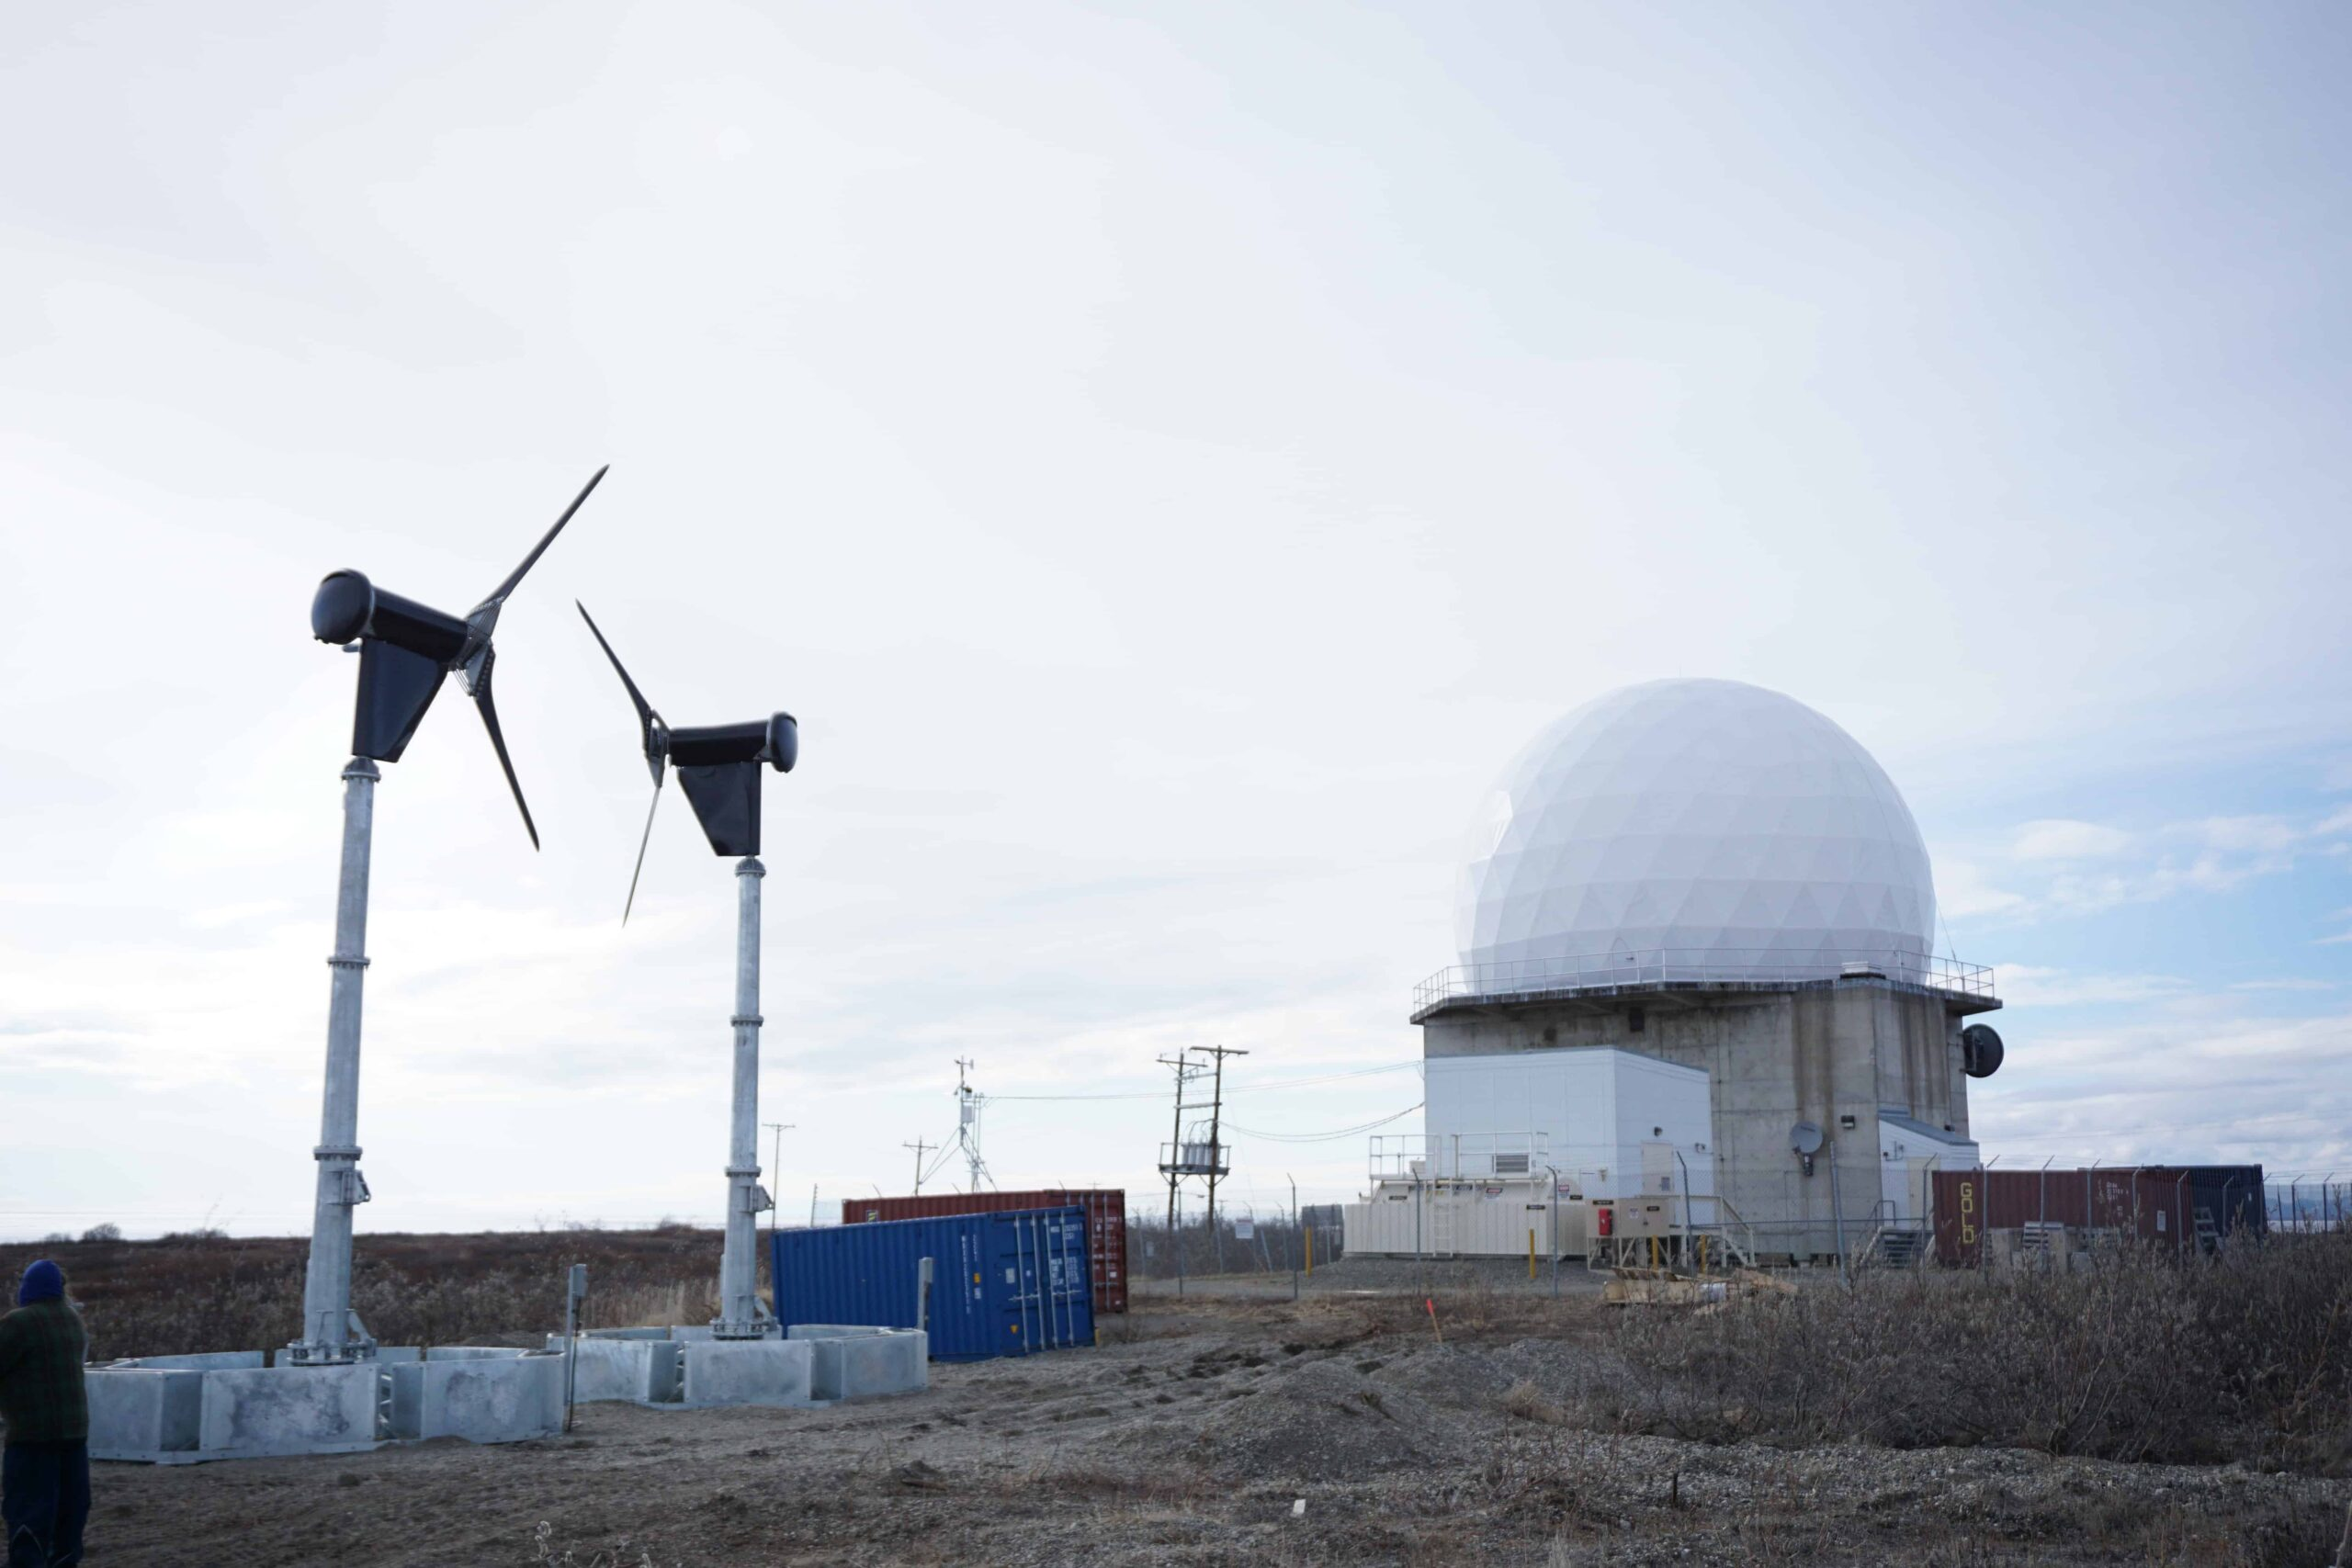 Who's behind overblown claims about Fort Drum and wind farms?